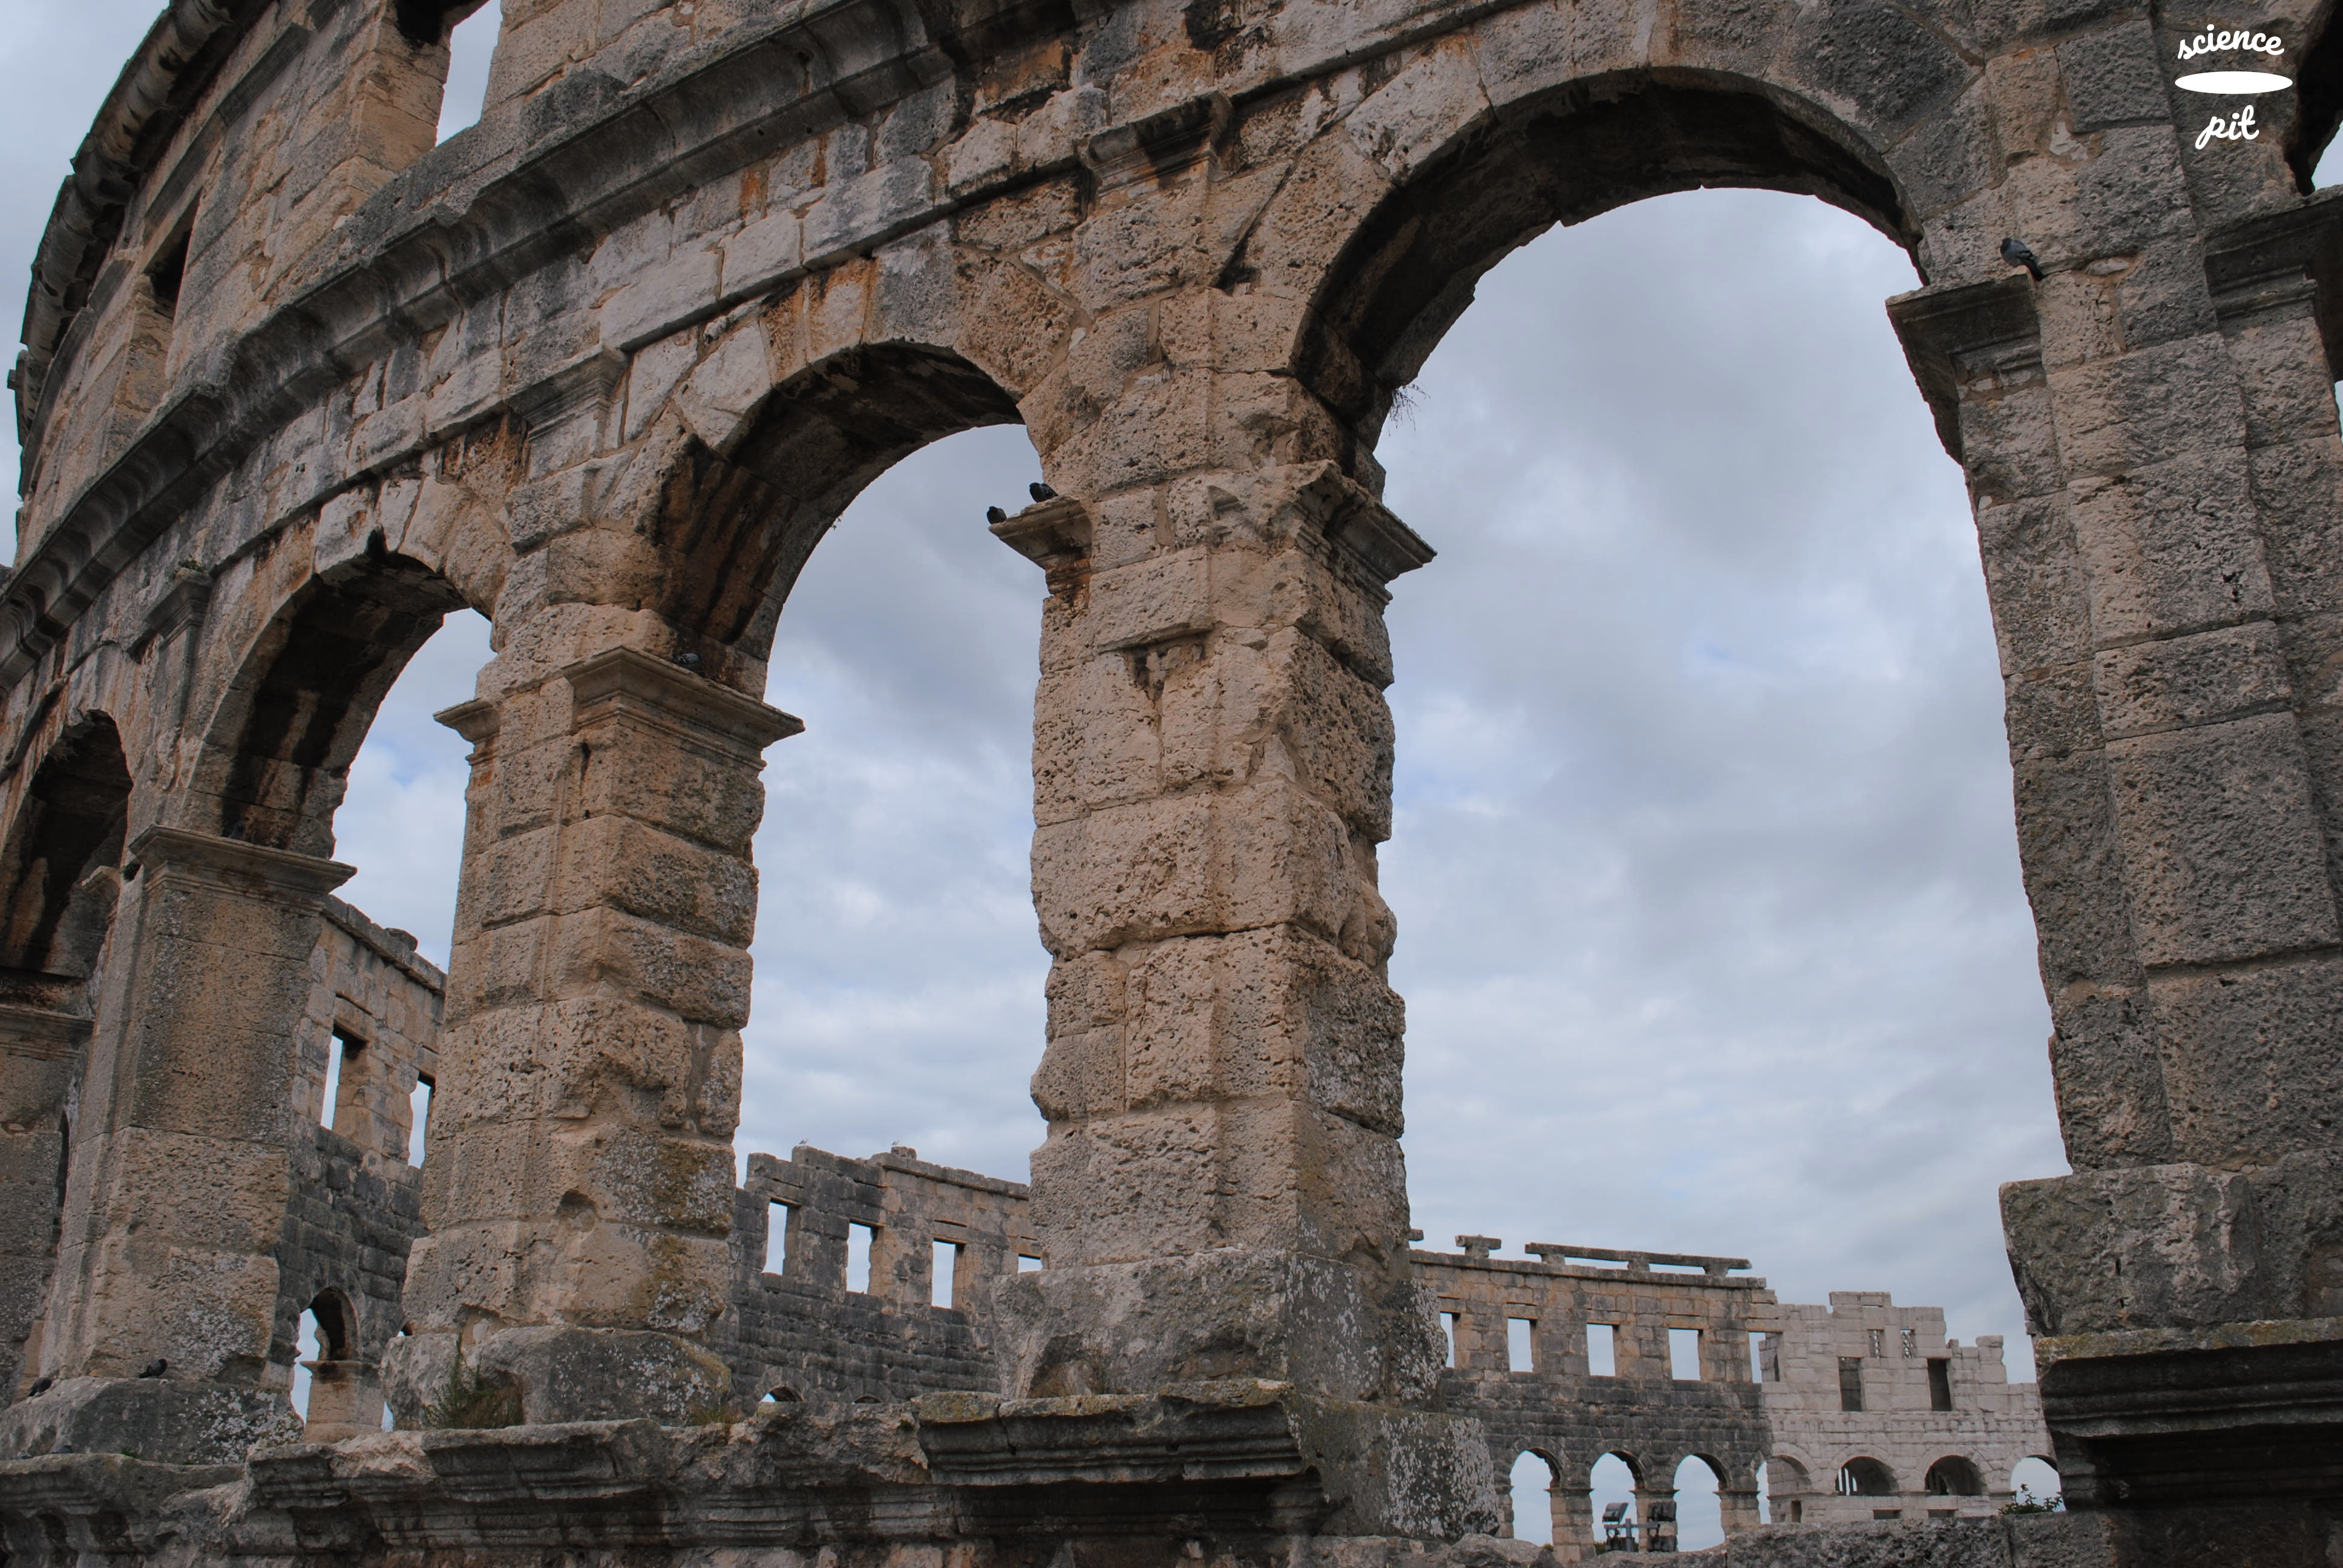 Huge stone arches of Amphitheater in Pula; with sky seen through the arches.